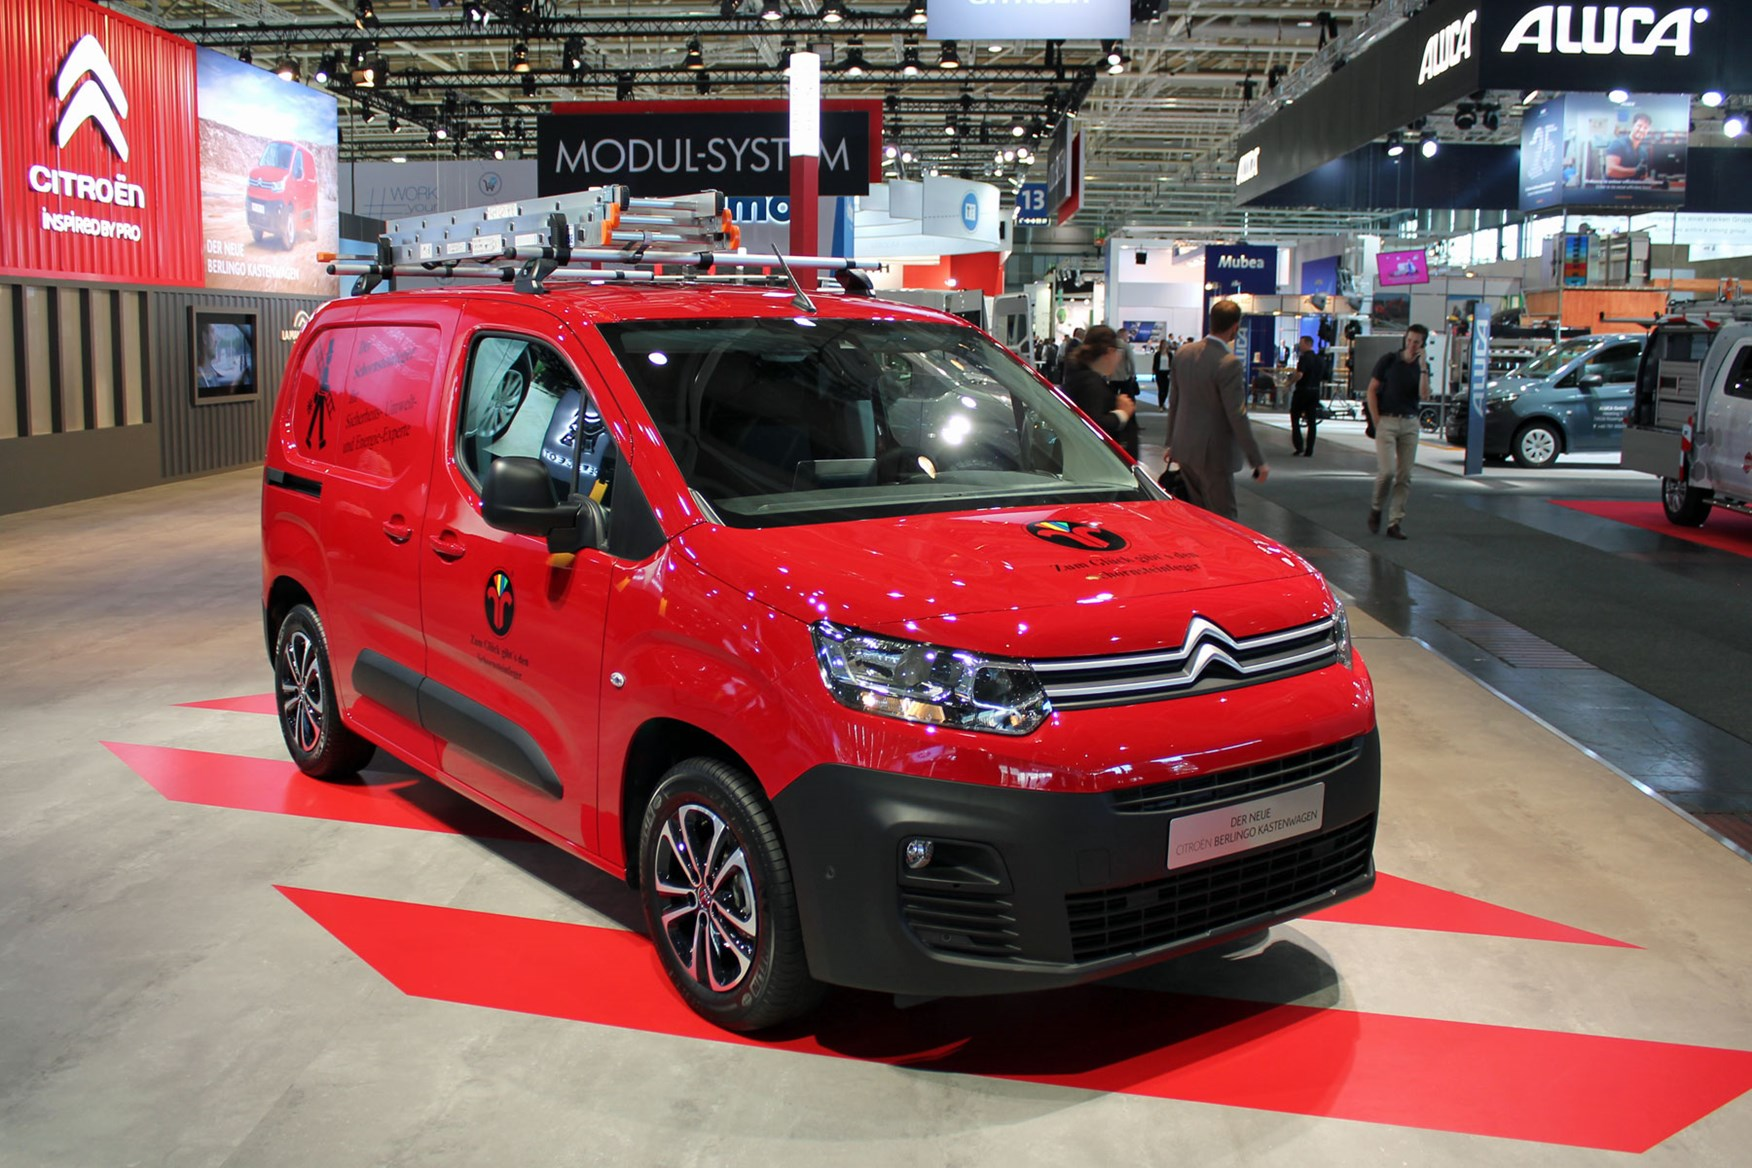 Iaa Commercial Vehicles Show 2018 All The Latest Van And